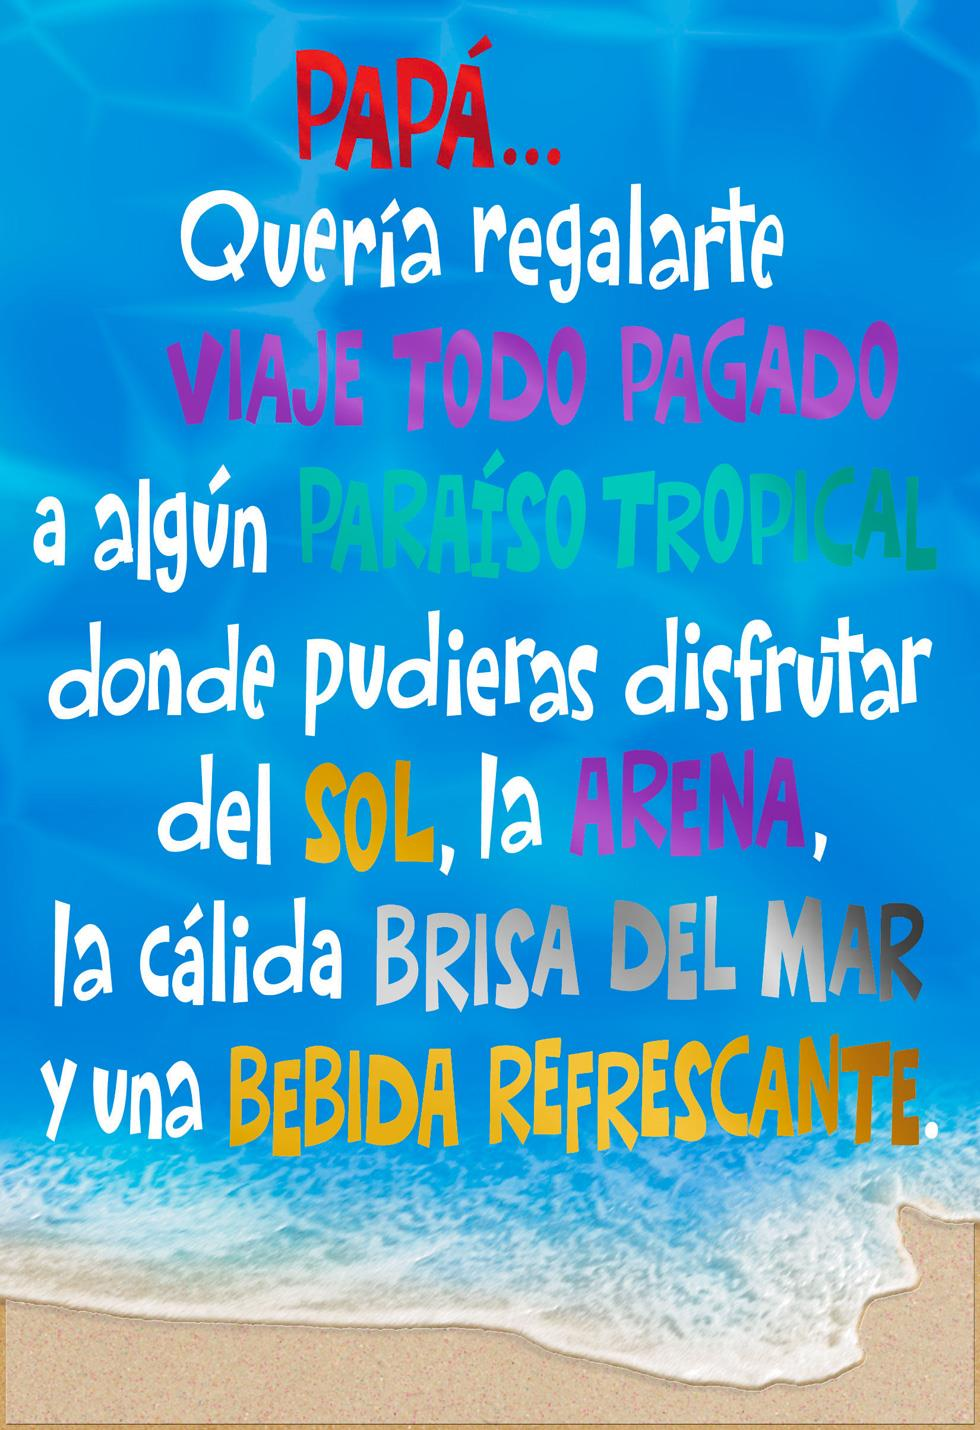 Tropical Vacation Spanish Language Funny Fathers Day Card